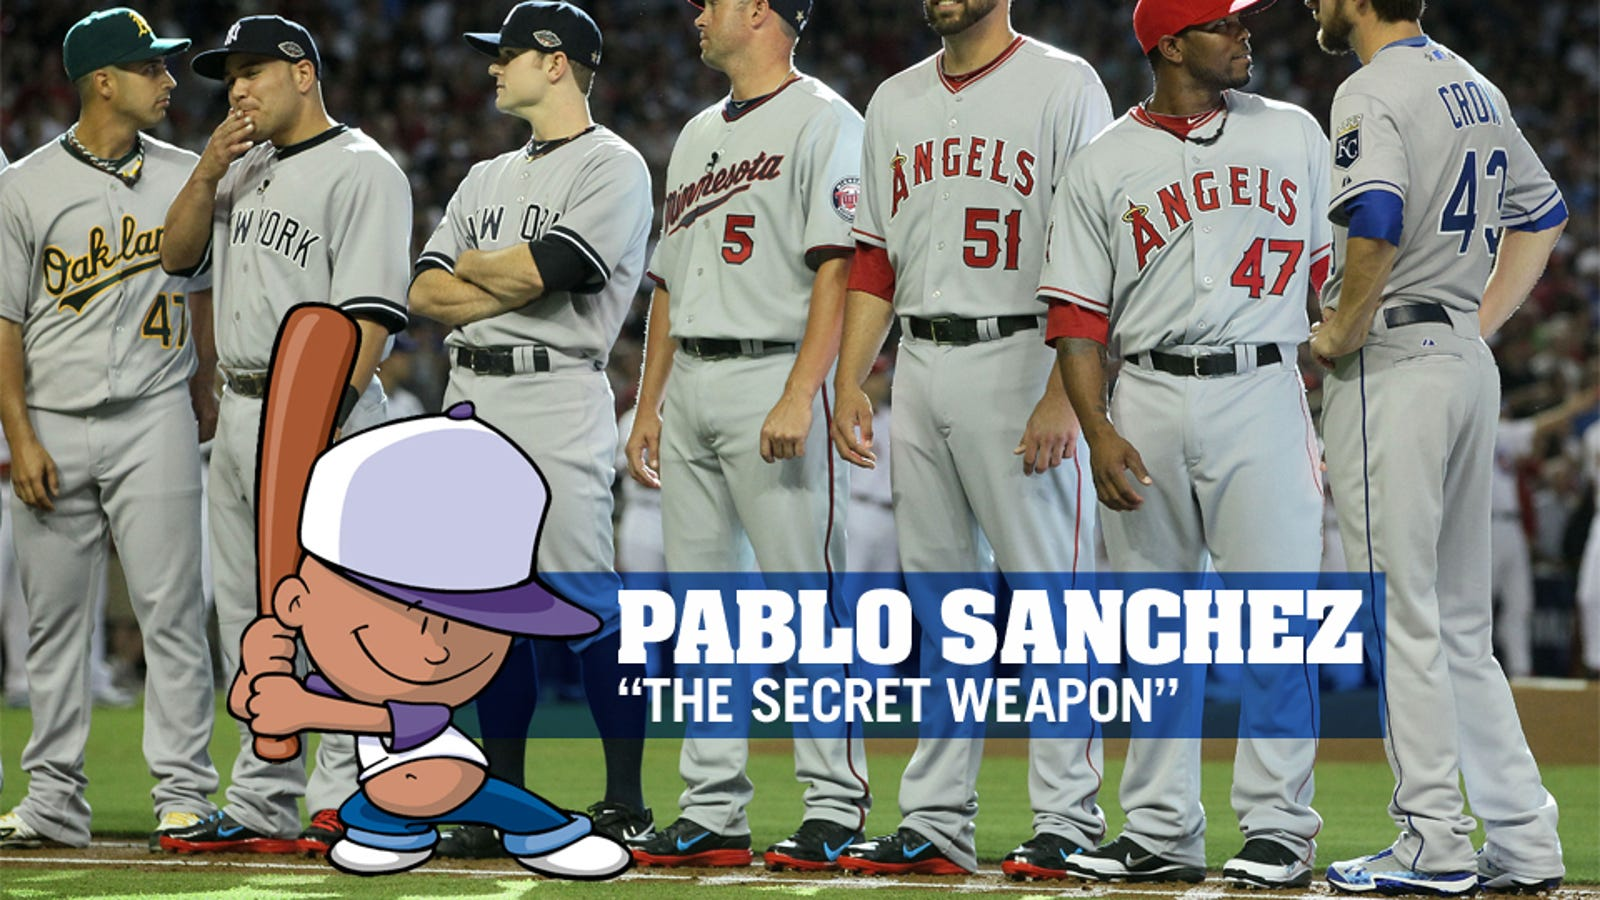 Backyard Baseball 2003 Players pablo sanchez would've used steroids, and other real-life